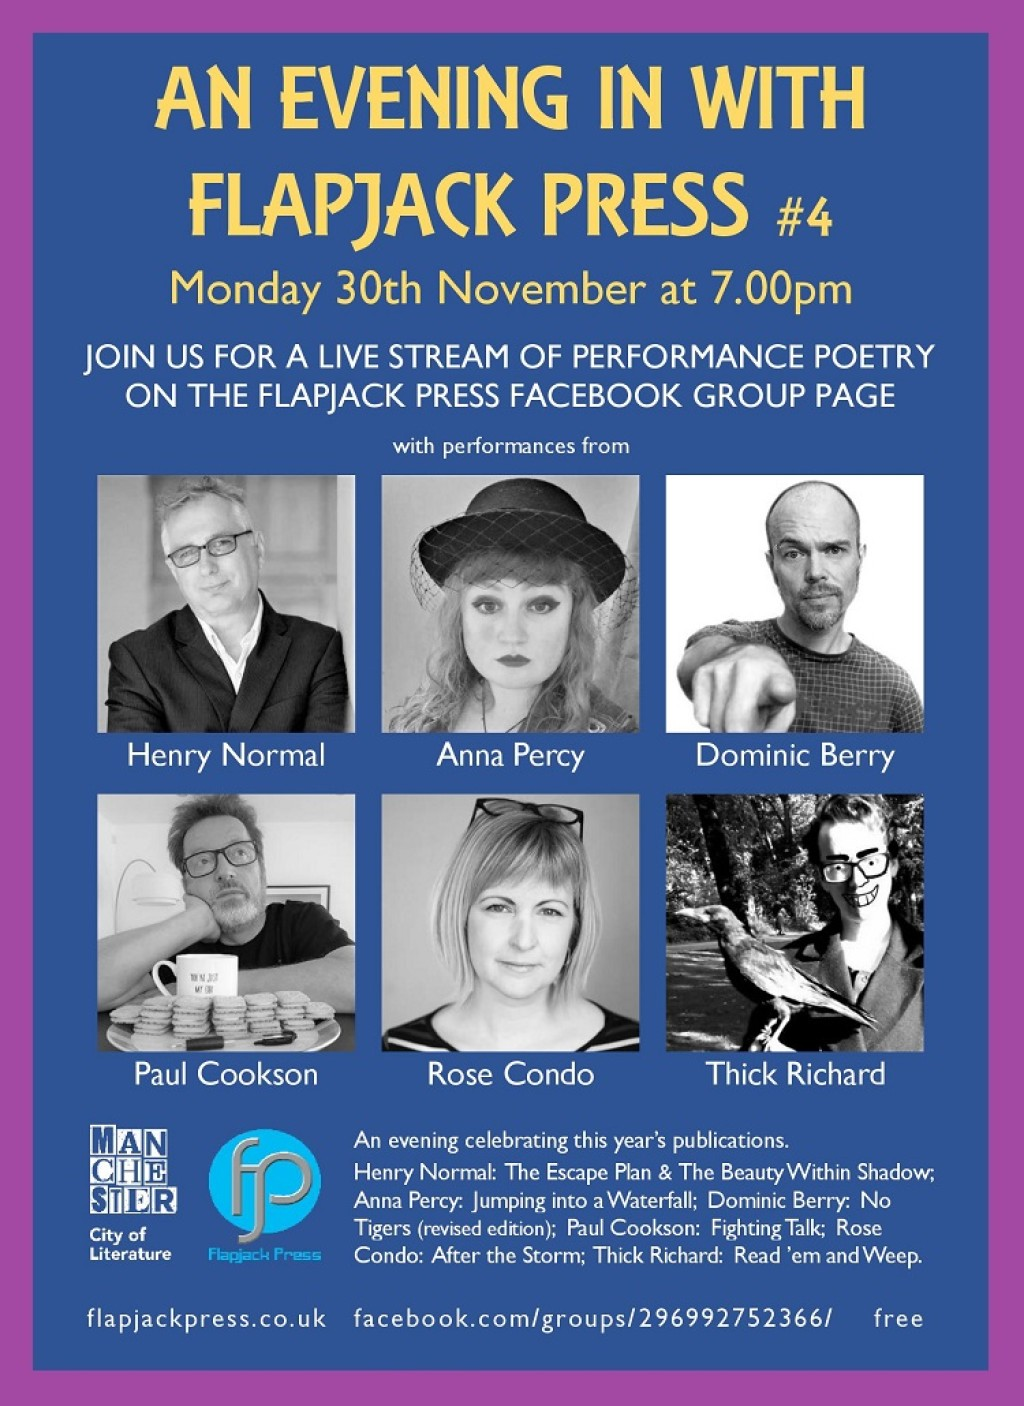 An Evening In With Flapjack Press #4